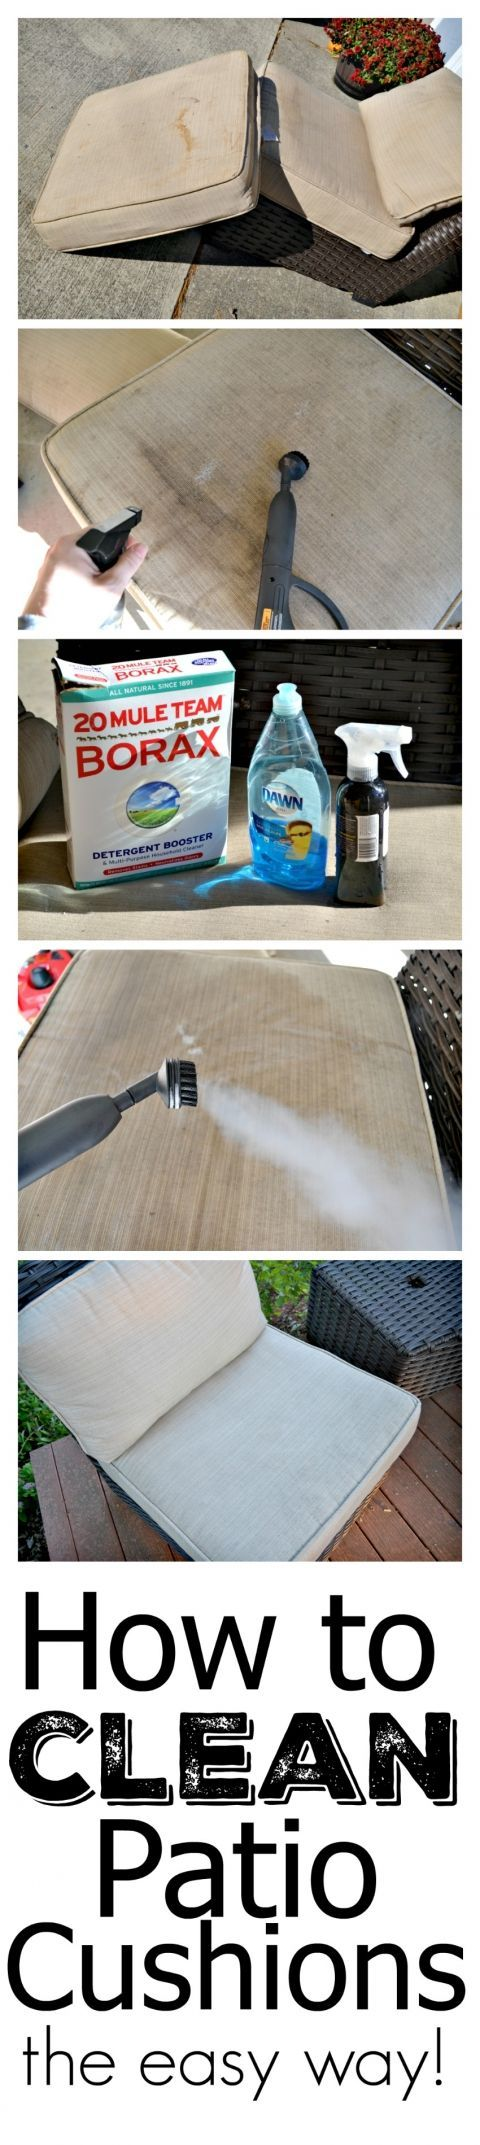 how-to-clear-patio-cushions-the-straightforward-means-from-the-playing cards-we-drew.... See more by visiting the photo link